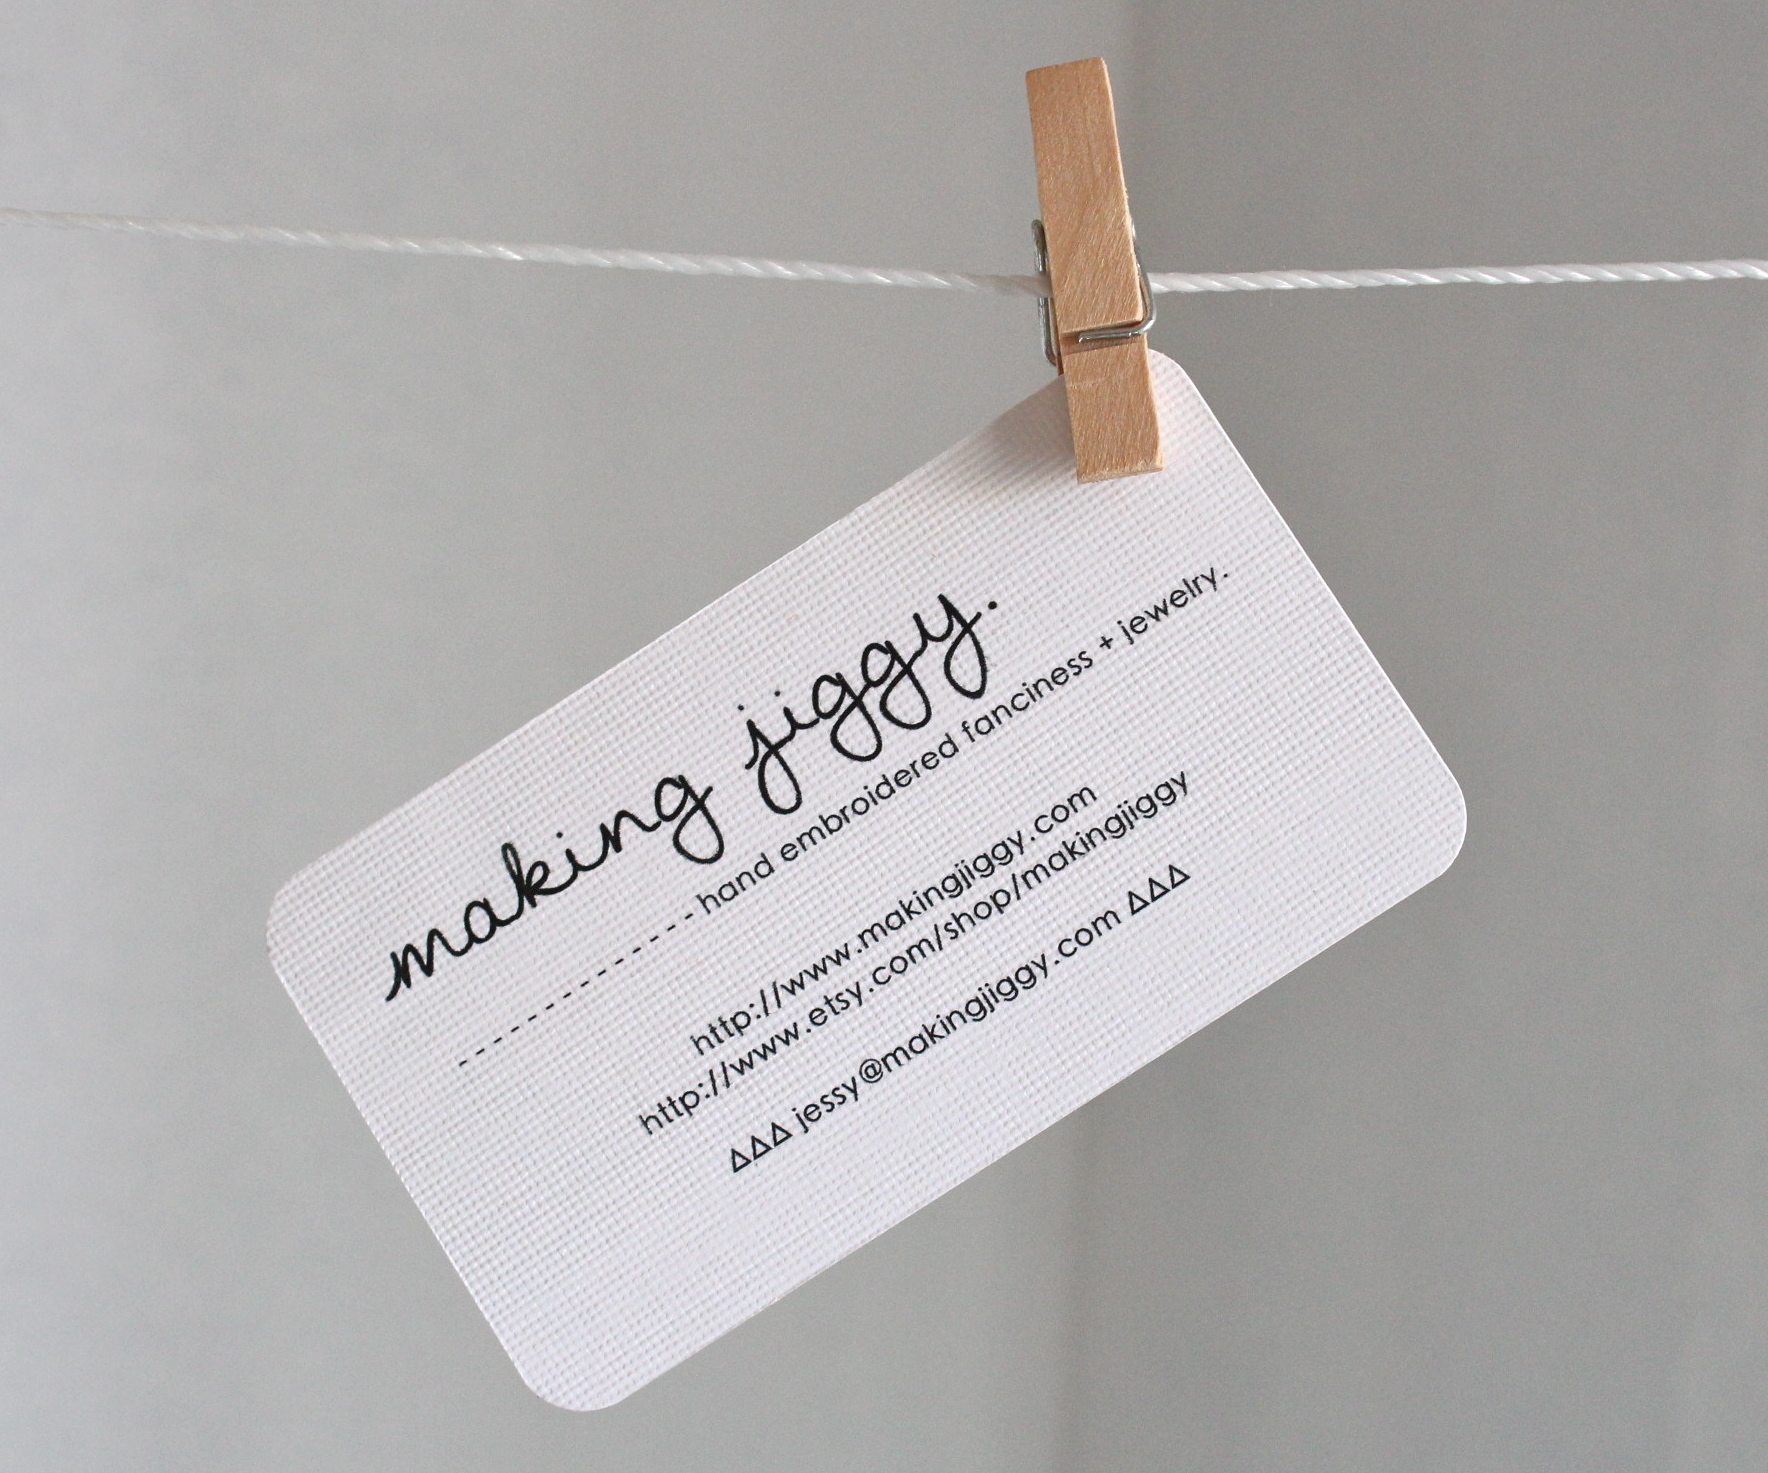 Print Your Own Business Cards Using Pages  20 Steps with Pictures ...